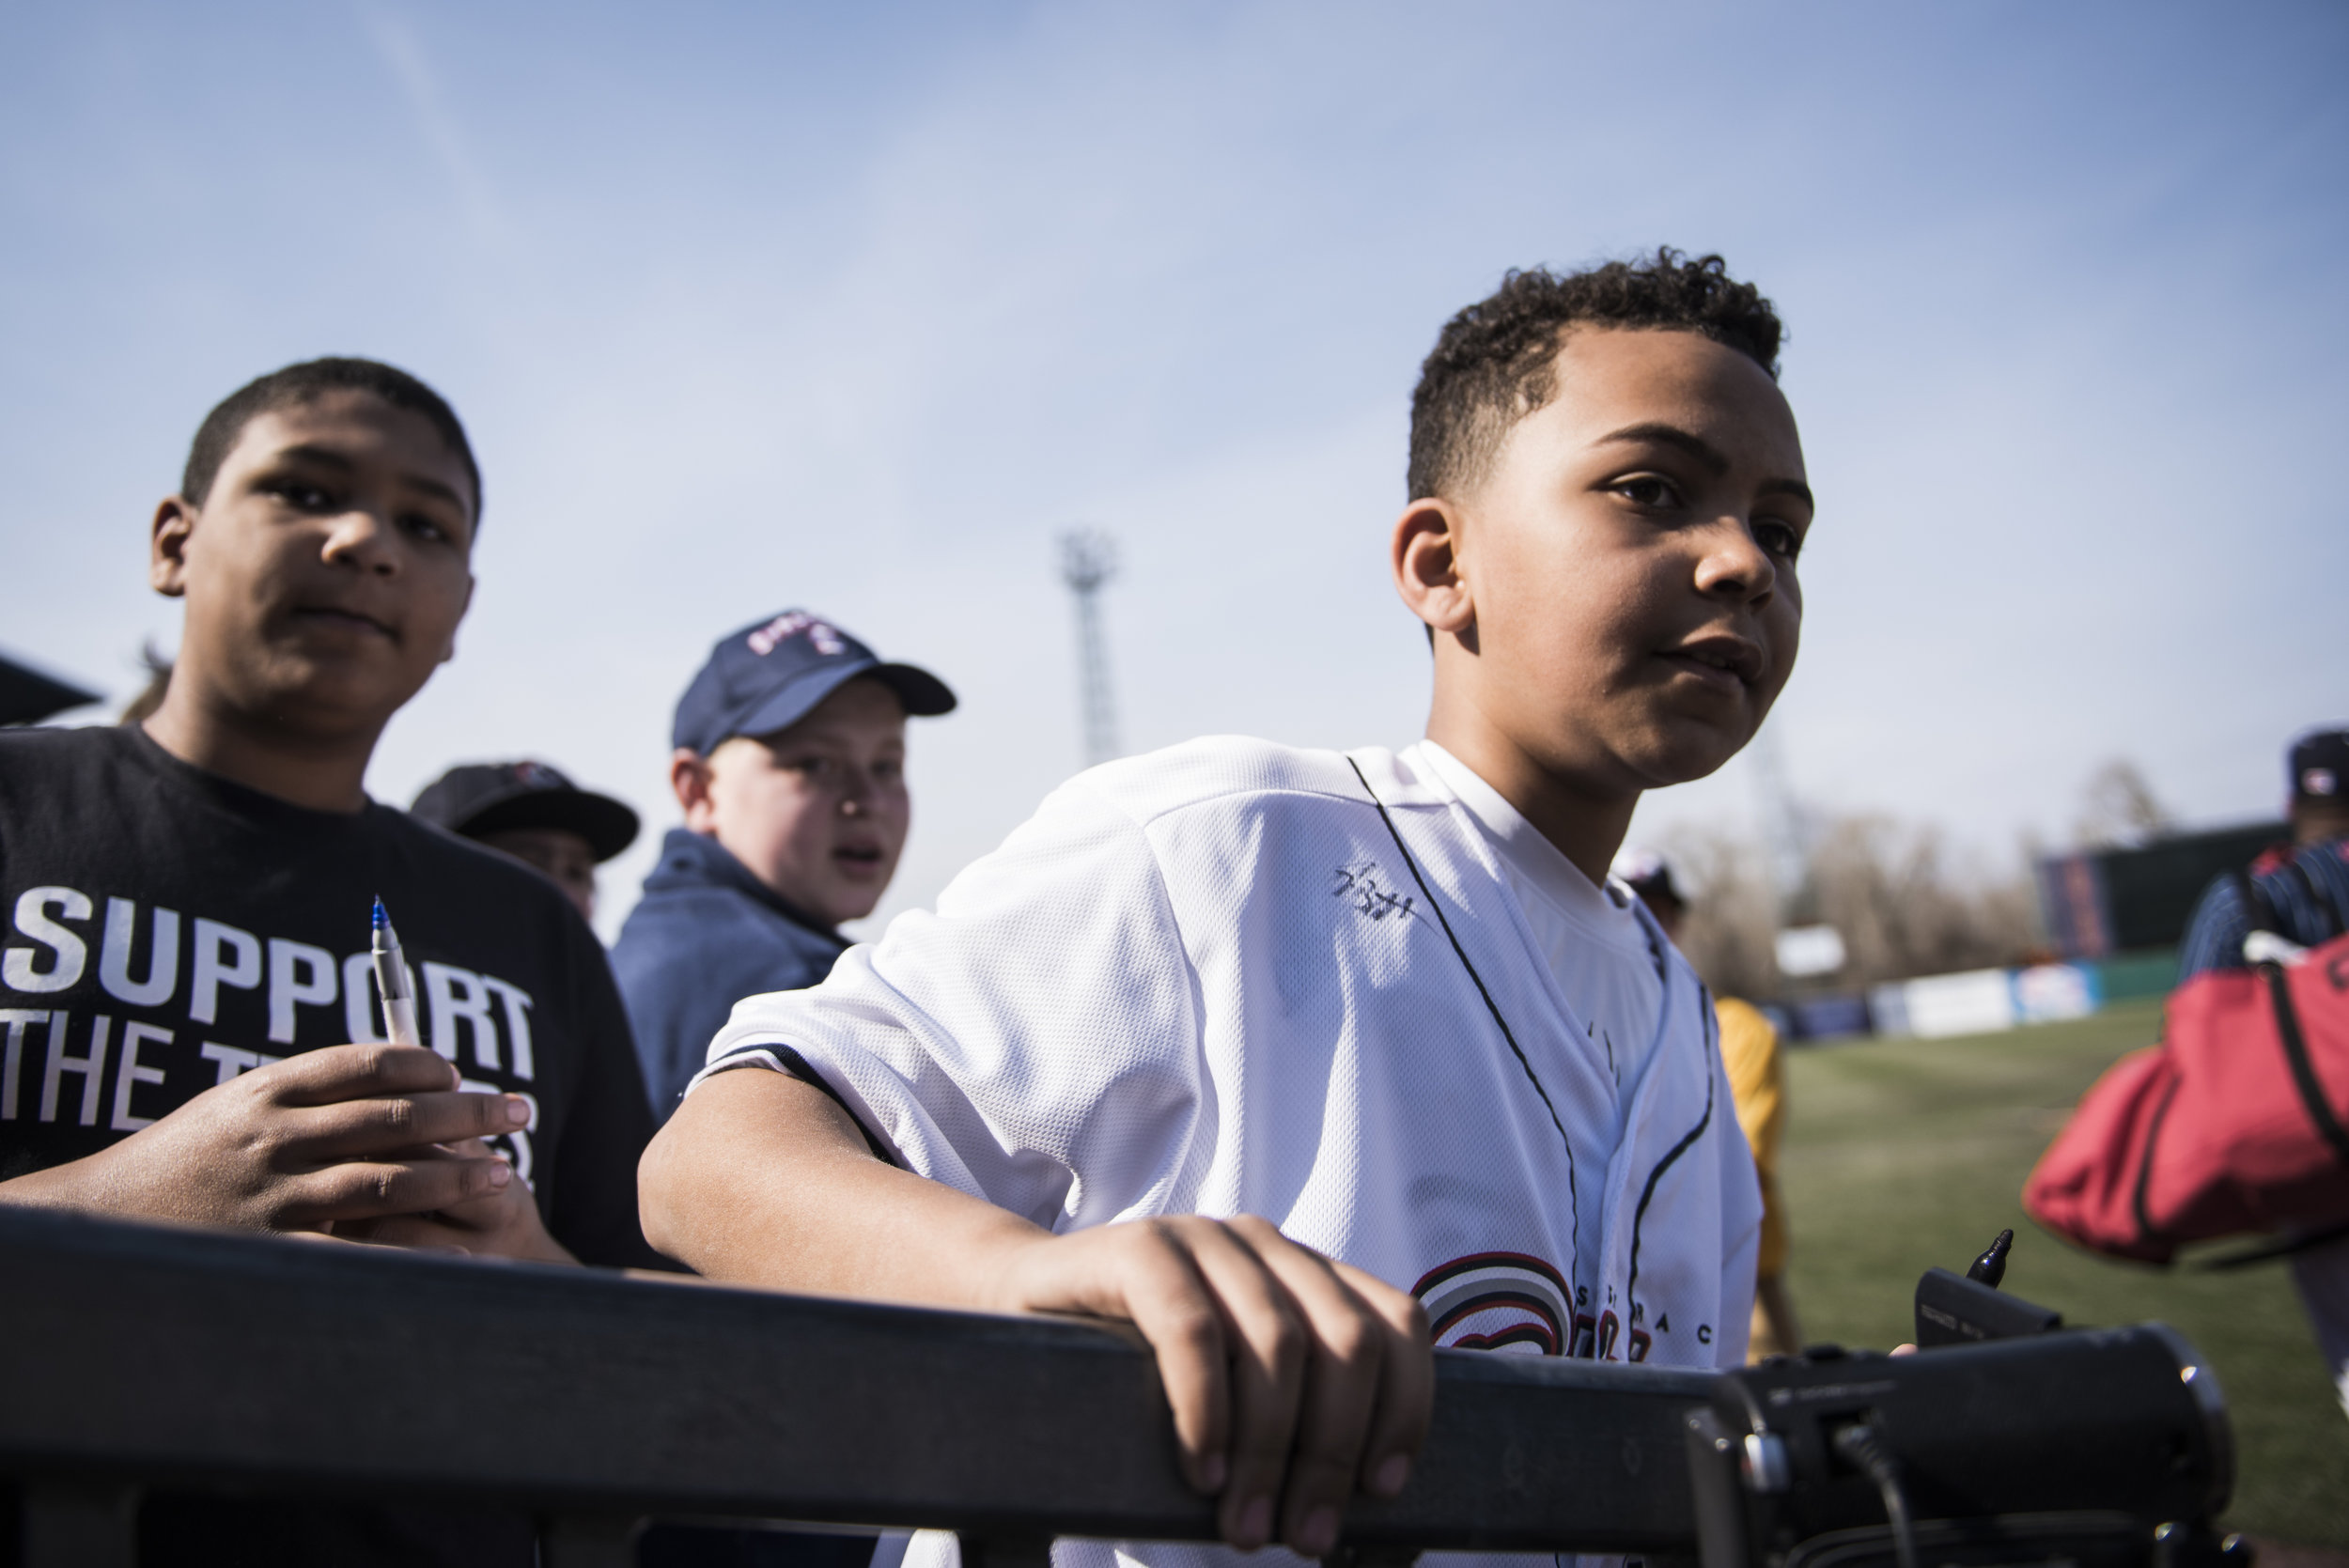 Young fans wait for Syracuse Chiefs players to come sign memorabilia ranging from old jerseys to baseball cards, before the Chiefs game against the Rochester Red Wings on April 9th, 2017.